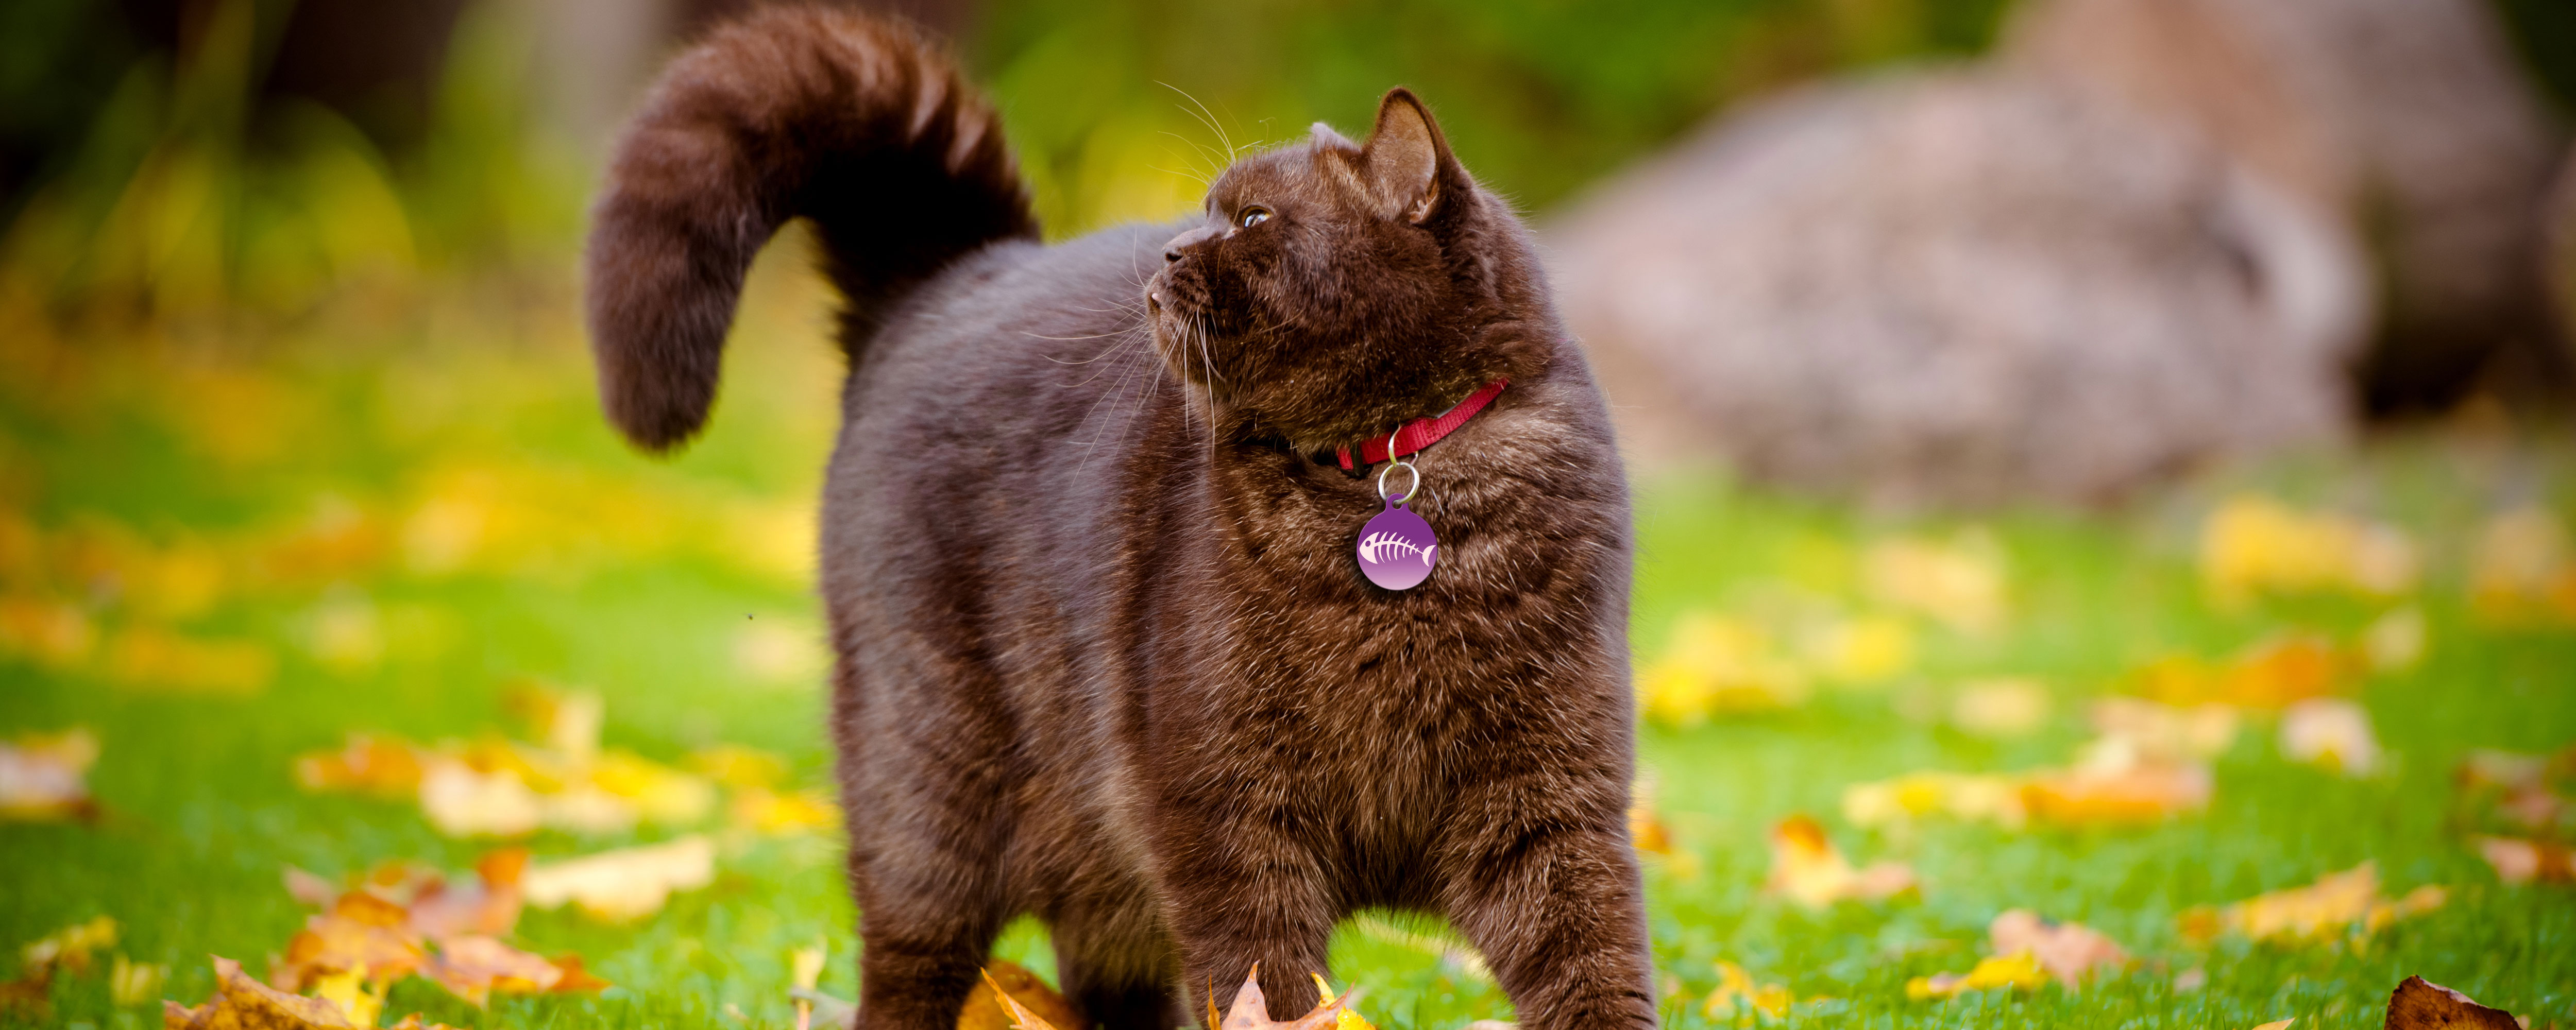 fat brown cat with fishy pethub tag wandering in park